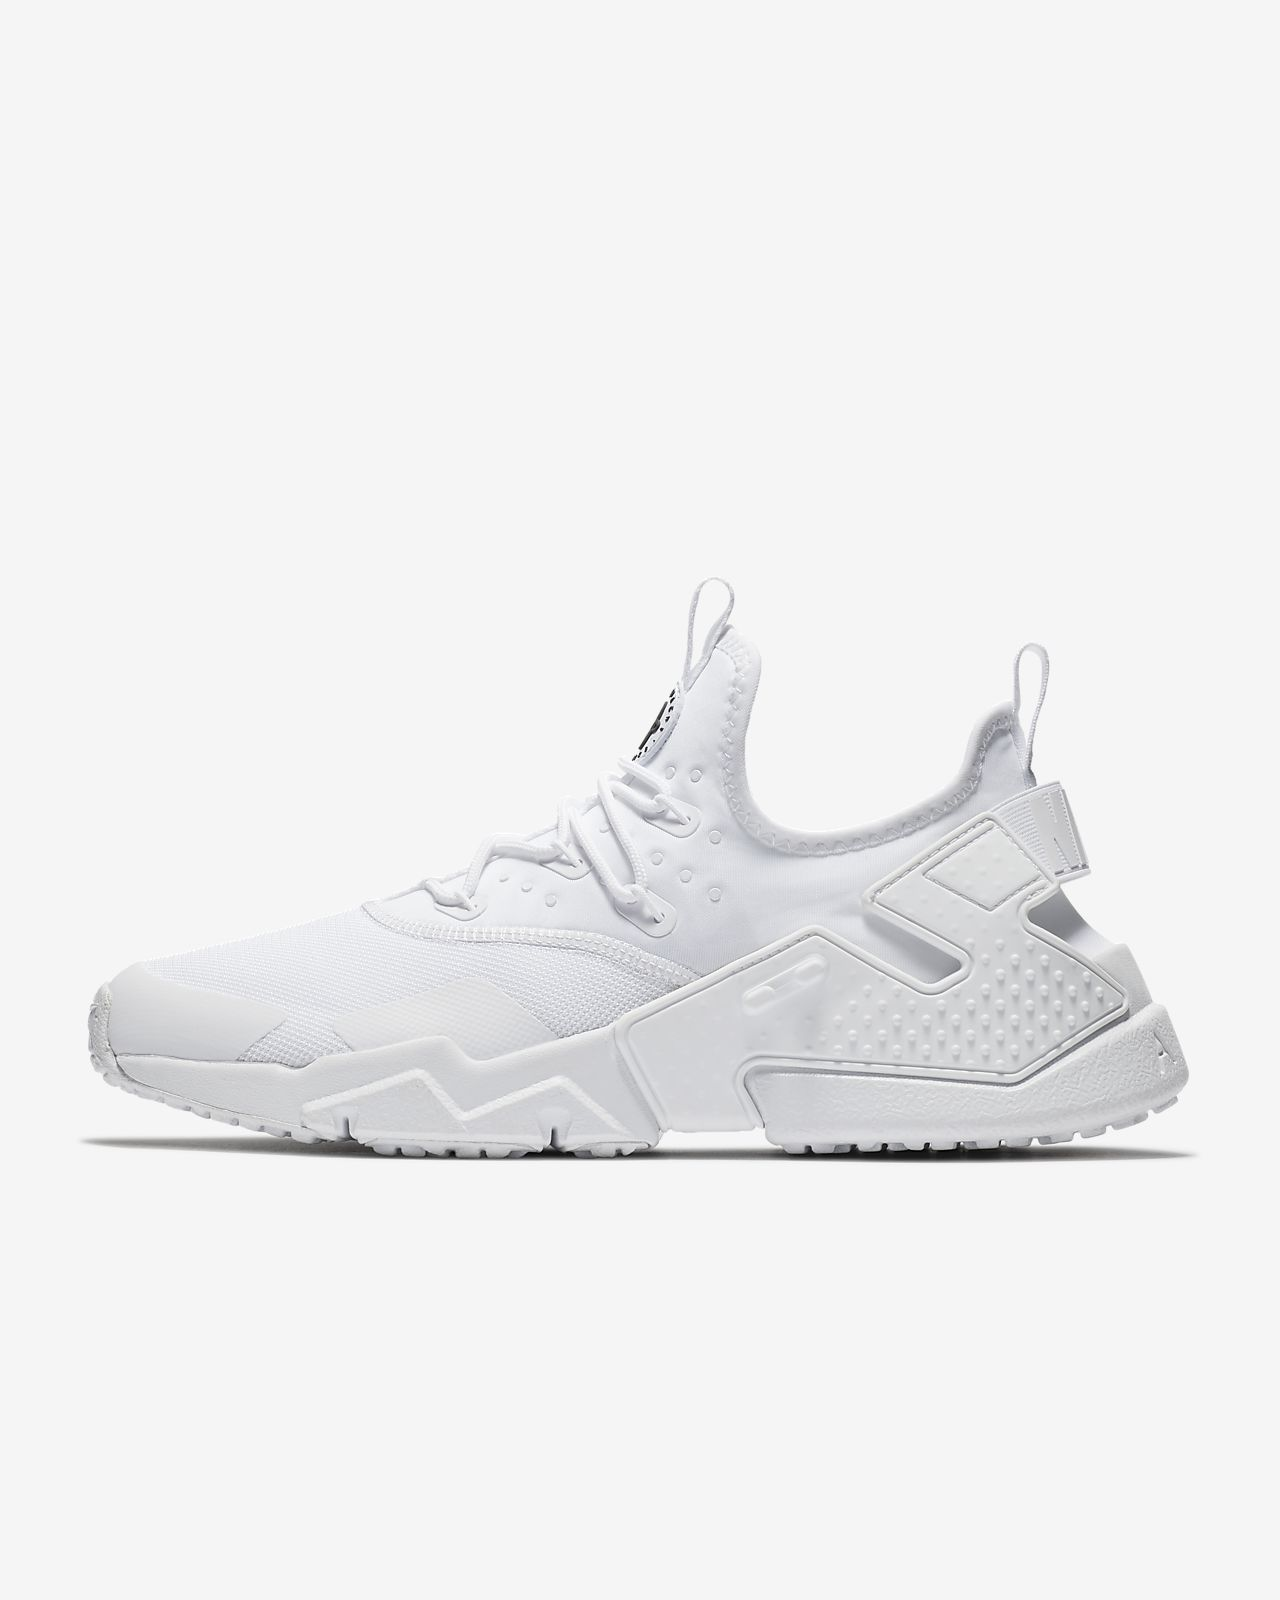 b9bcc504c0495 Nike Air Huarache Drift Men s Shoe. Nike.com